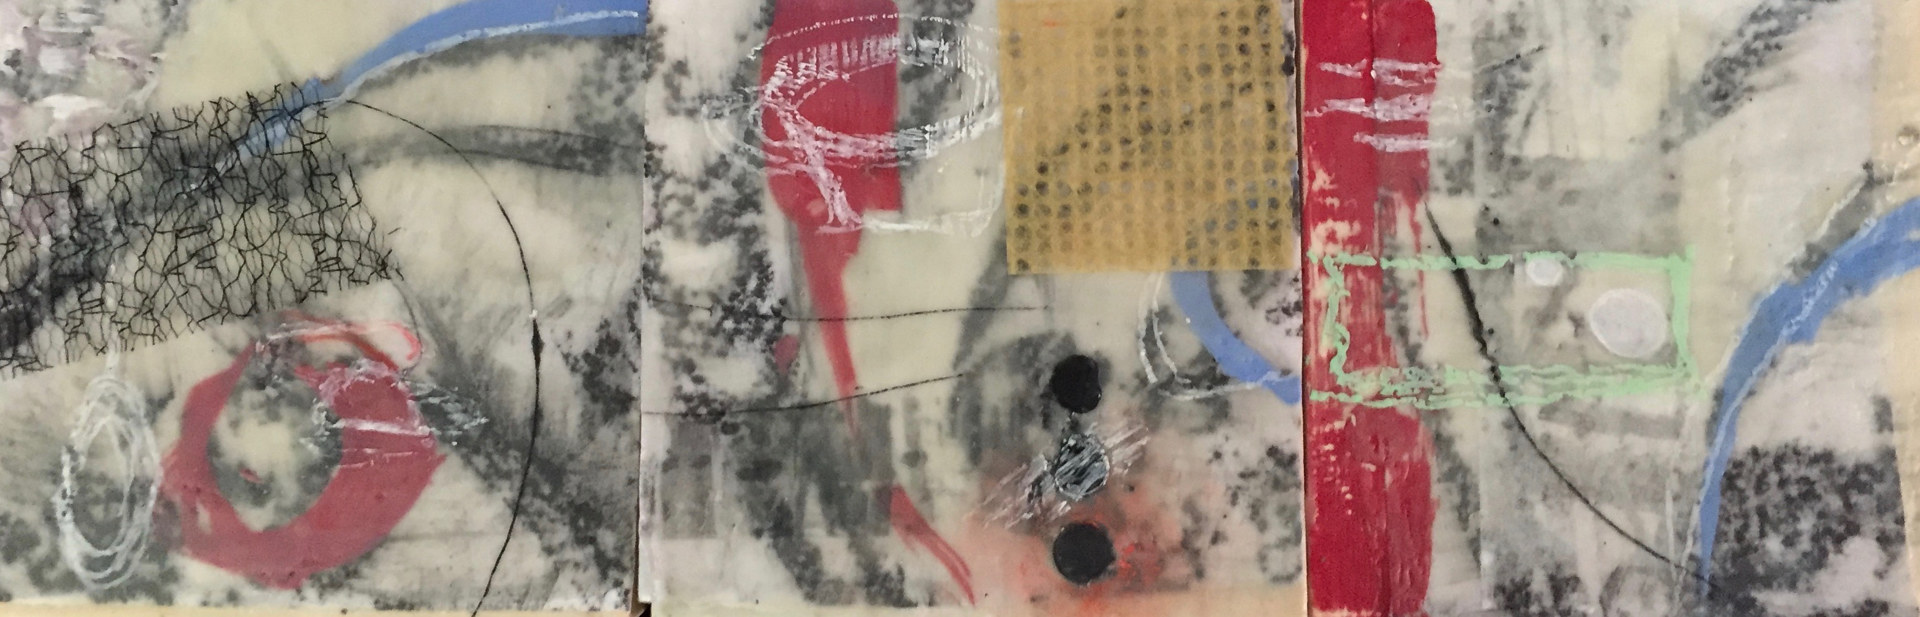 Mixed-media artwork Primary Collage Triptych by Lisa Printz